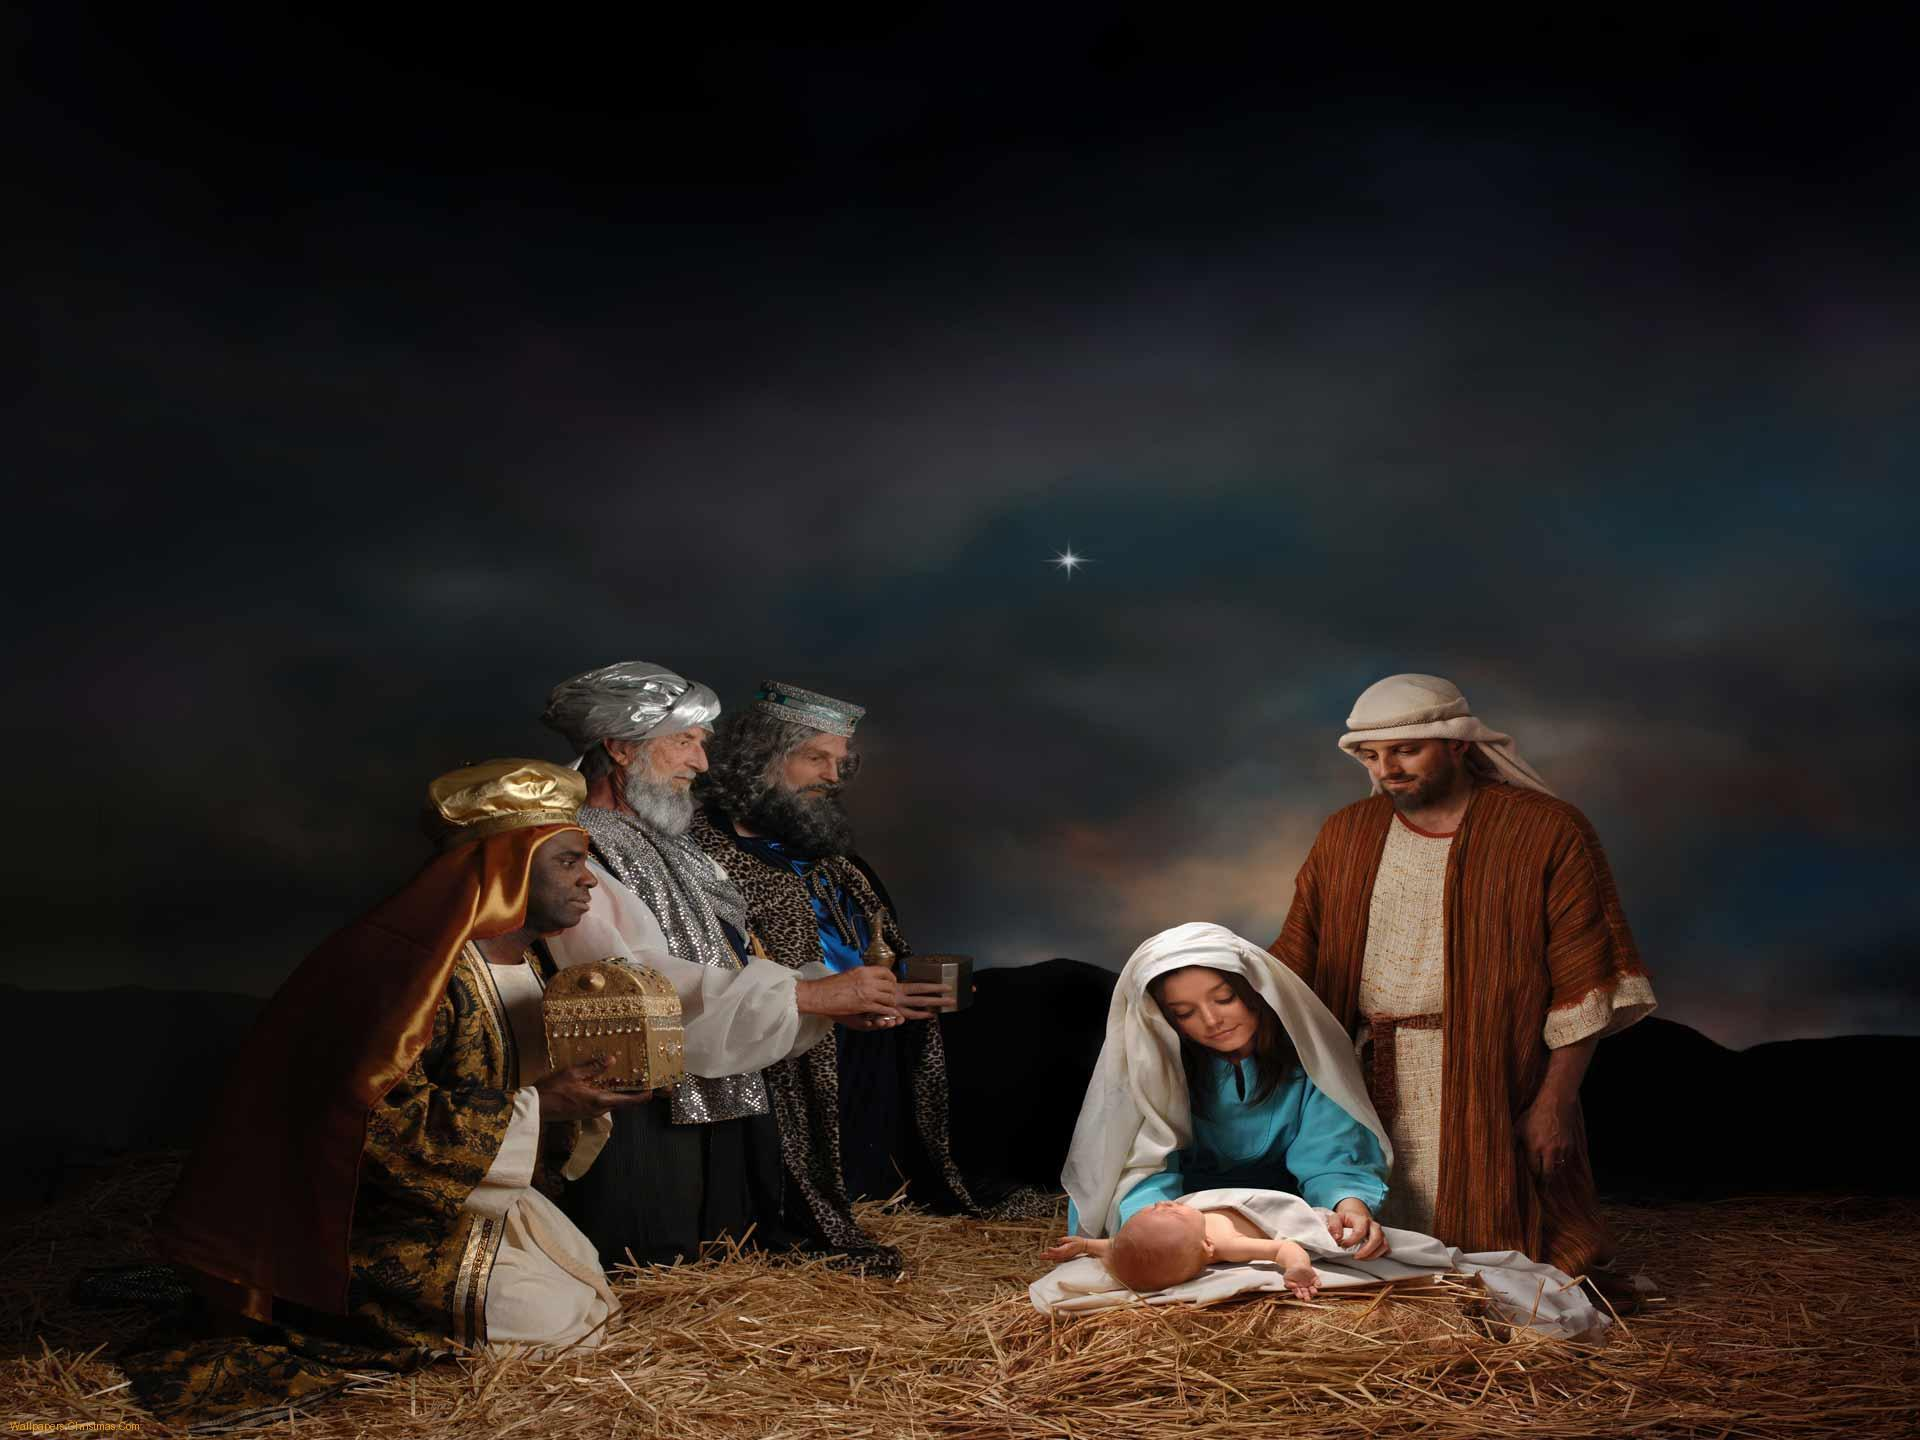 nativity scene desktop wallpapers